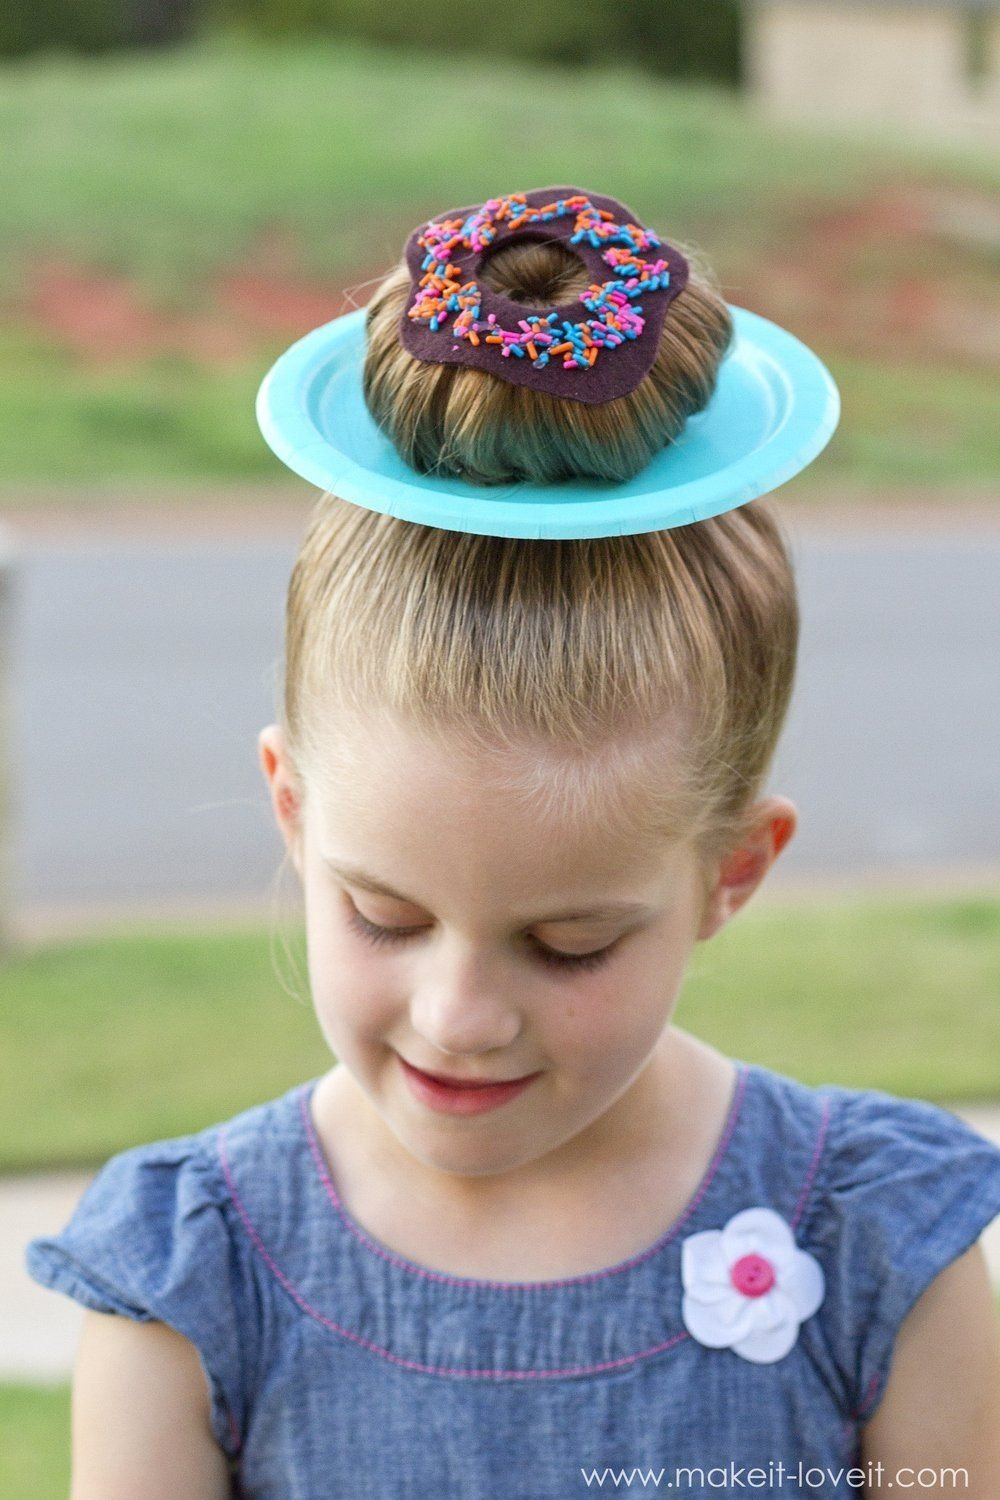 10 Cute Ideas For Crazy Hat Day 25 clever ideas for wacky hair day at school including 13 2021